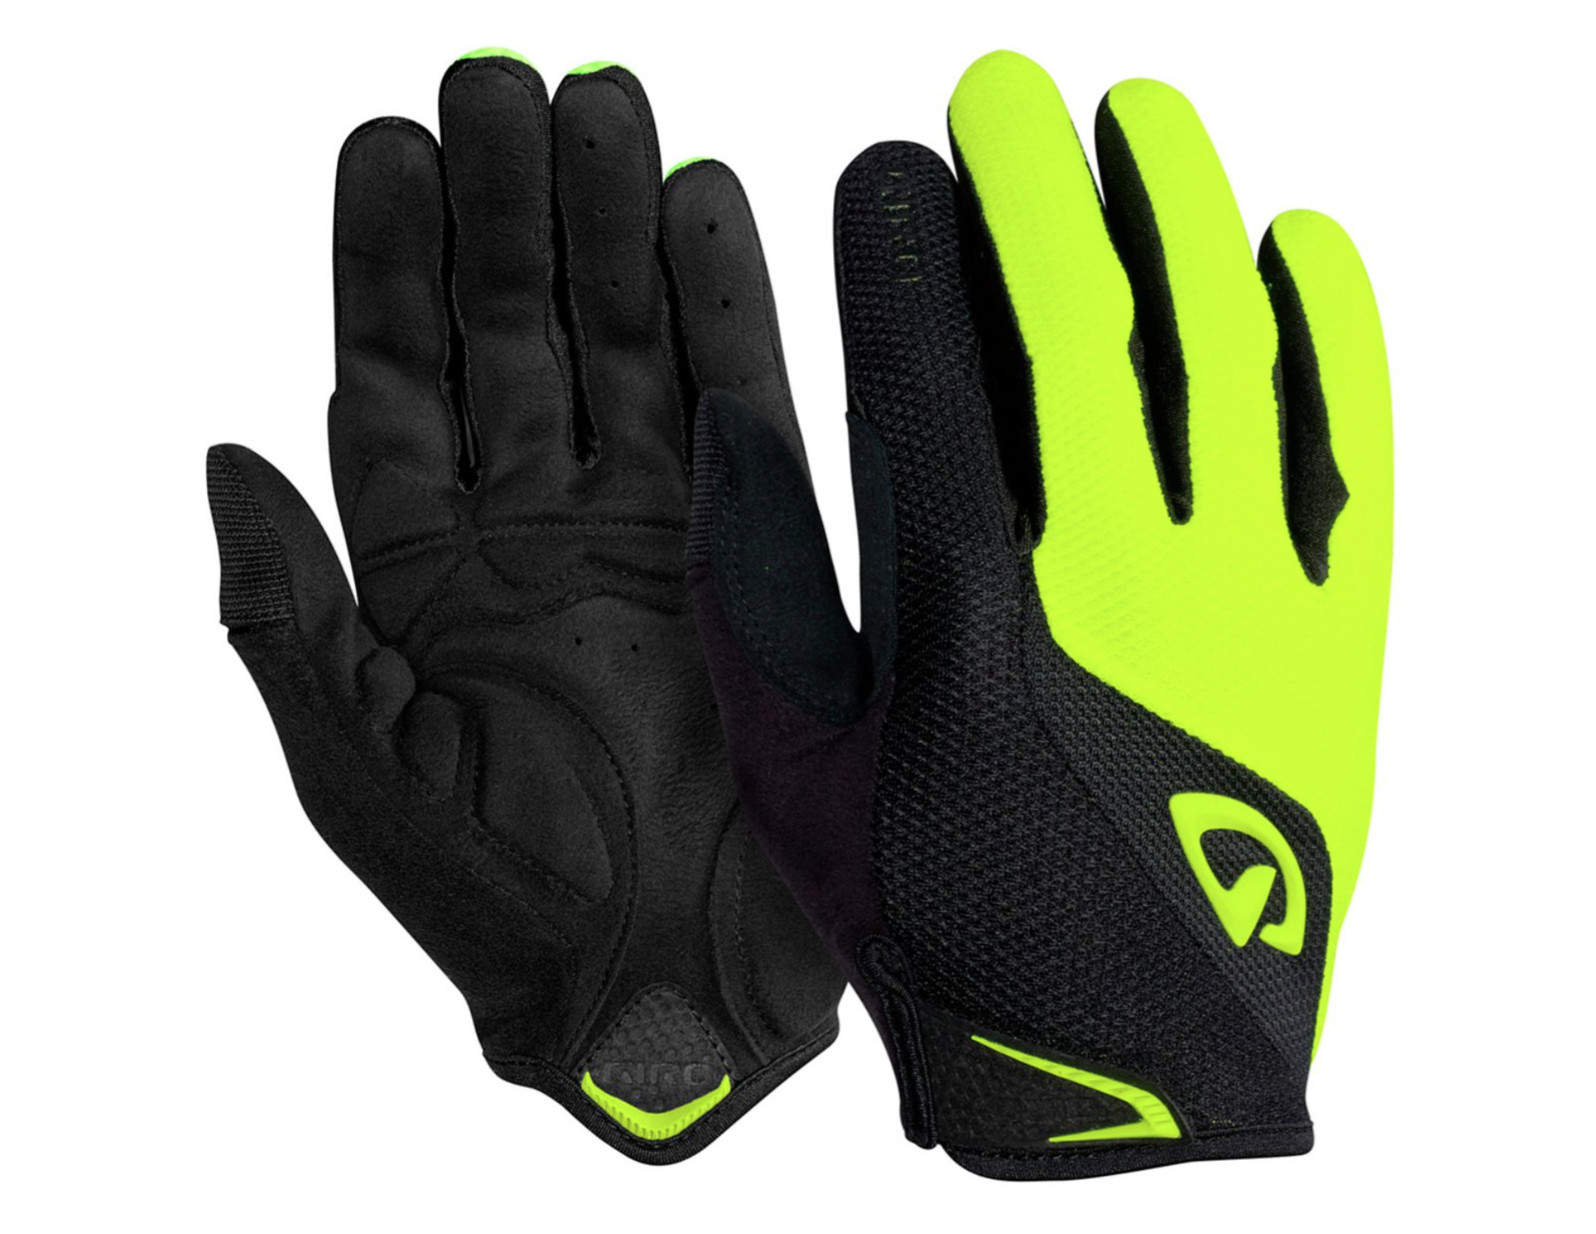 Giro Bravo LF Gloves - Black : Highlight Yellow